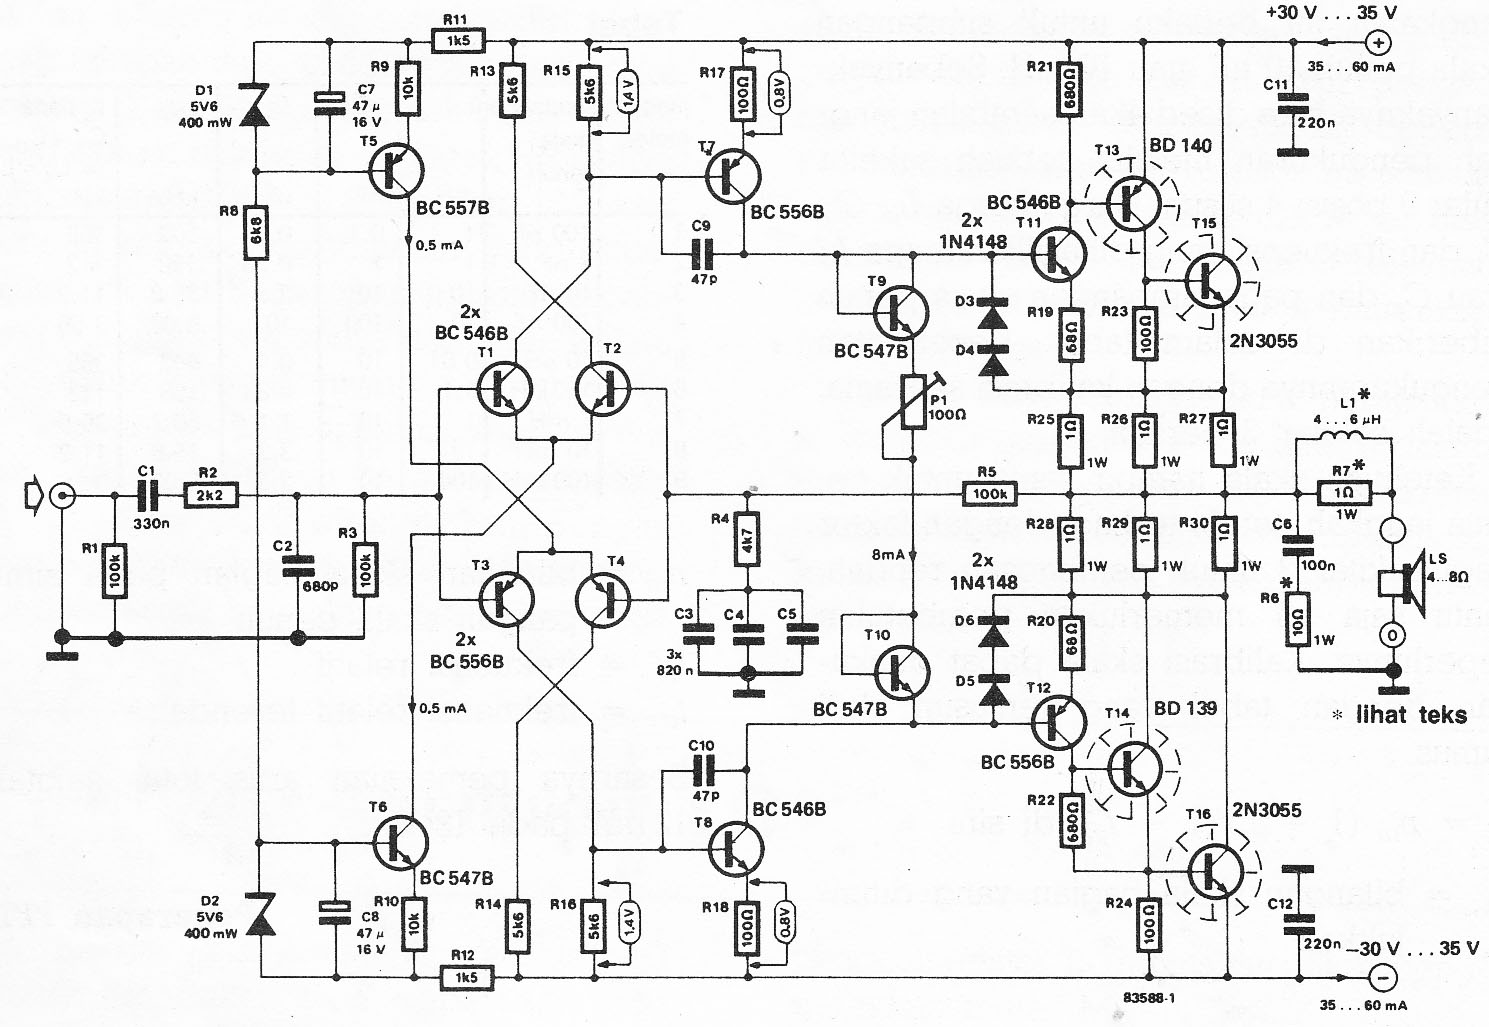 40w hifi amplifier rh audiocircuit blogspot com 40w audio amplifier circuit diagram 40w car audio amplifier